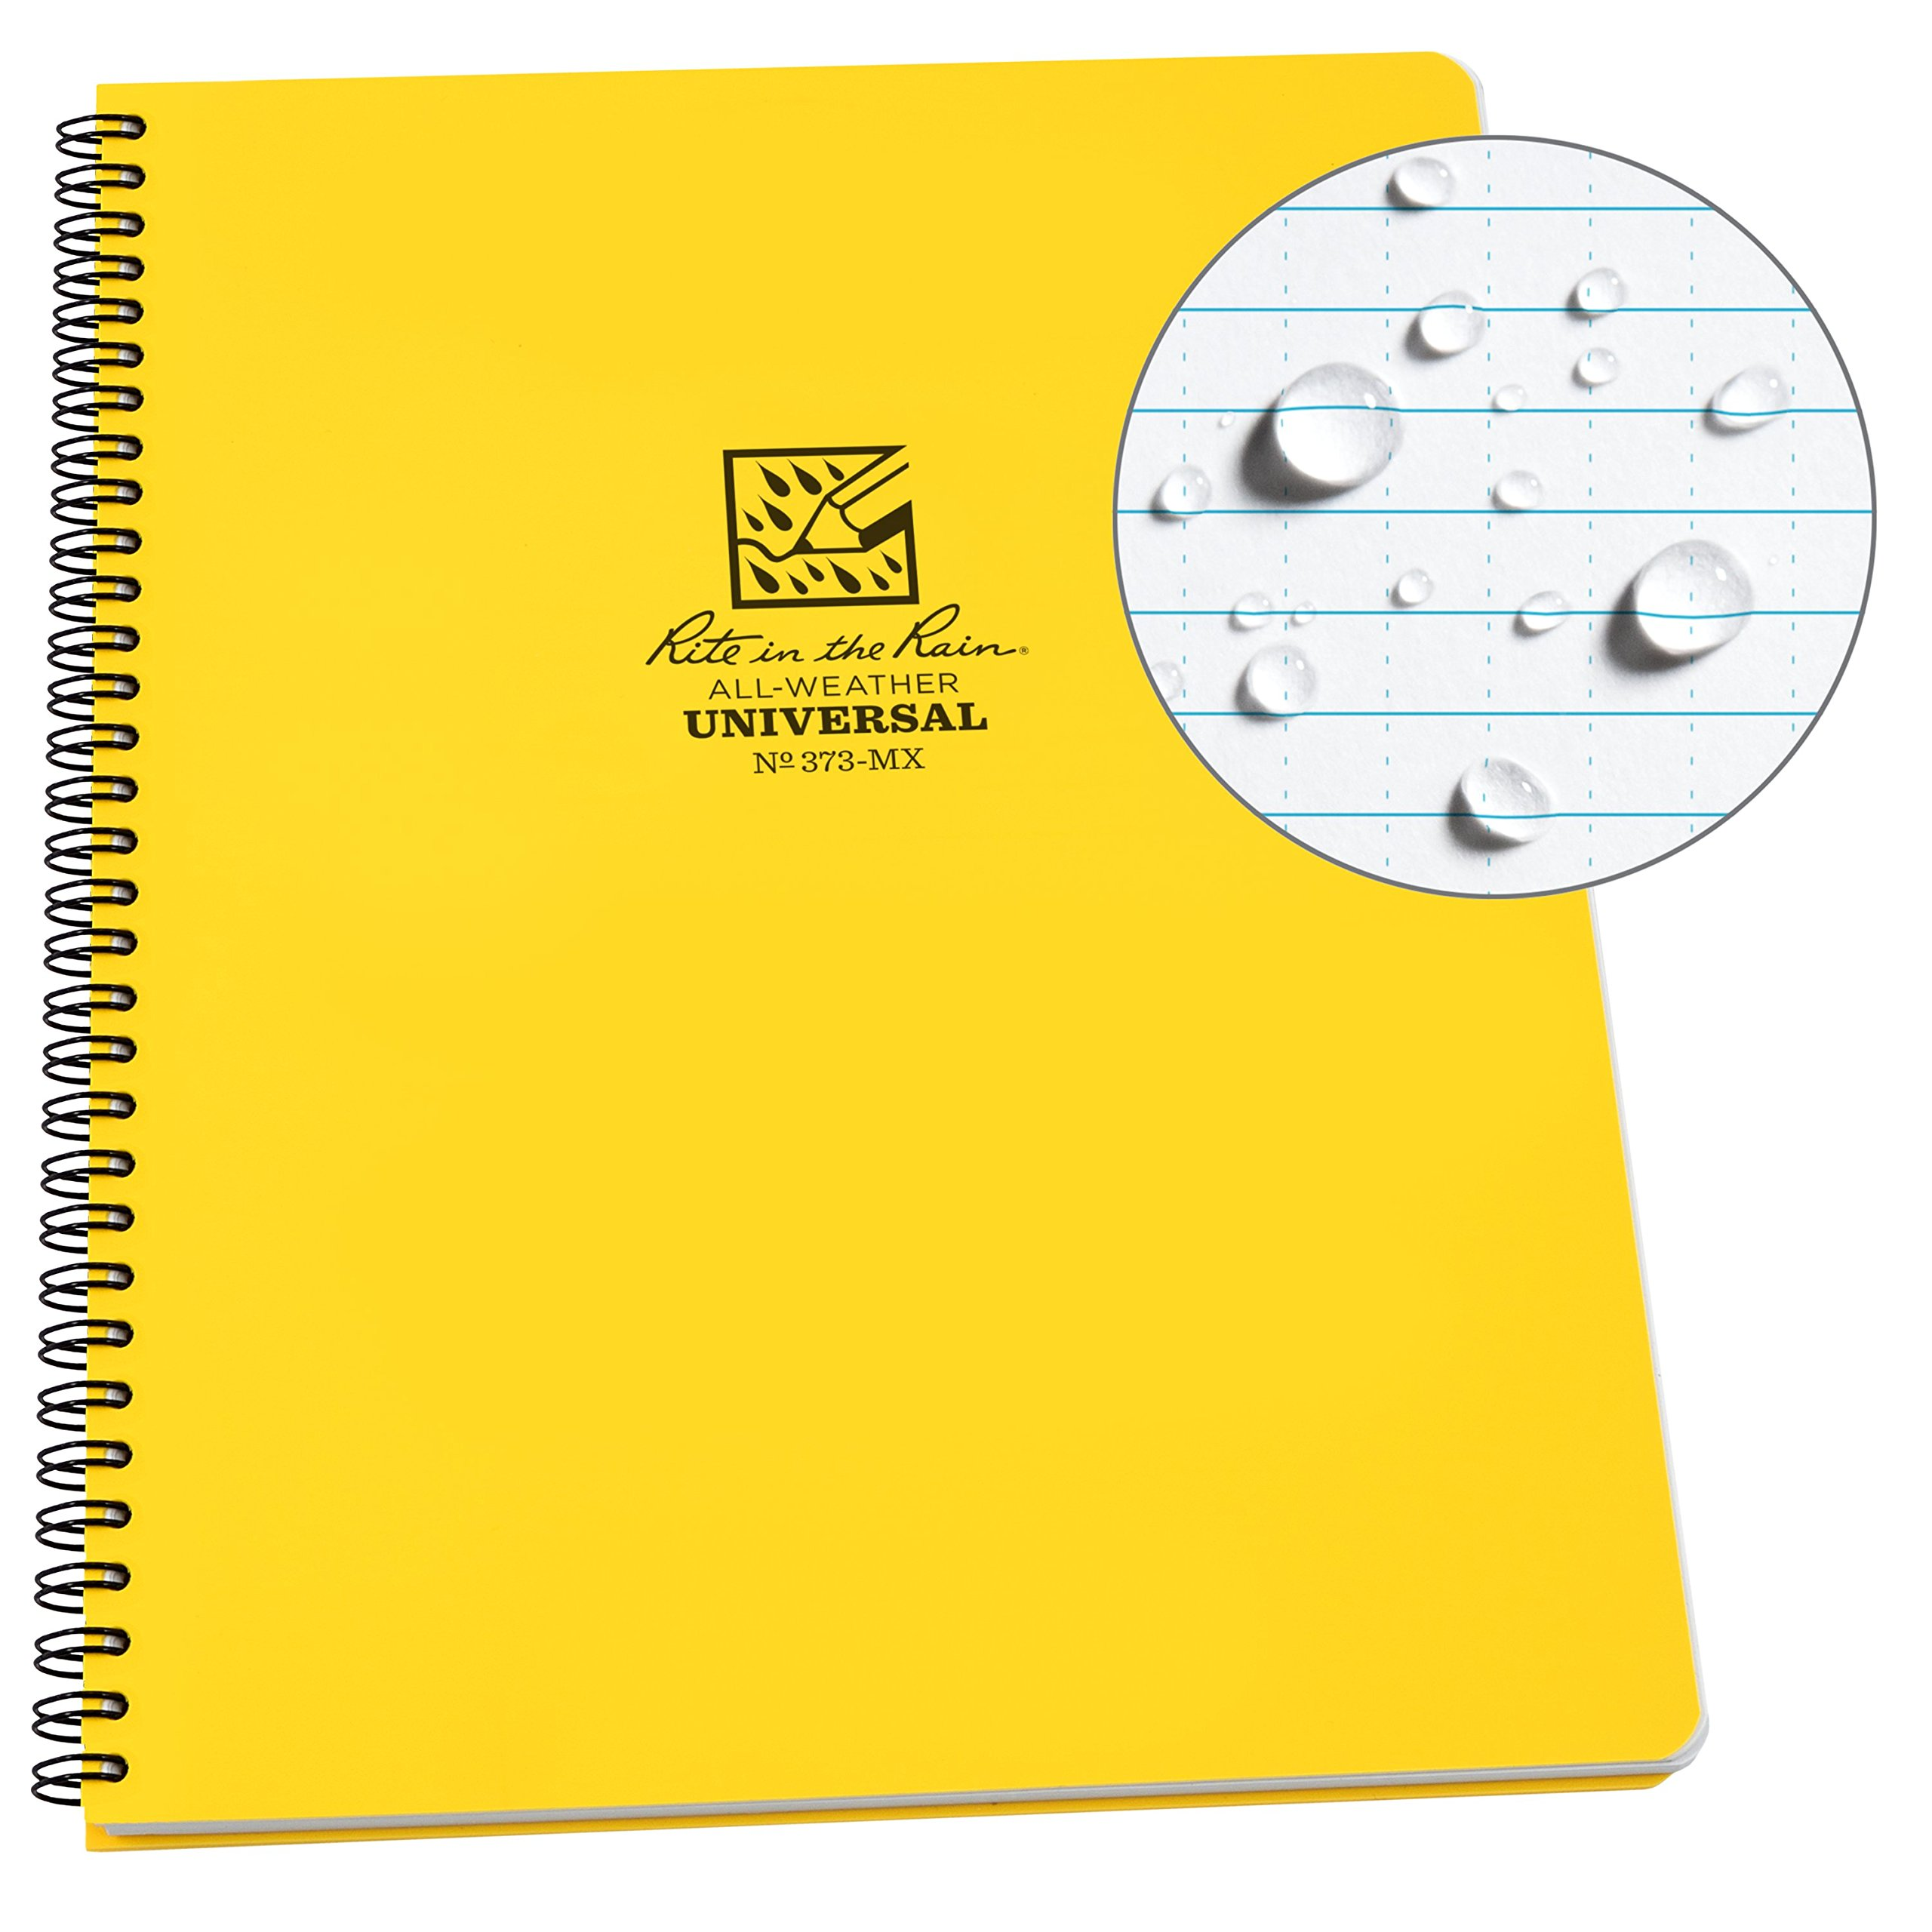 Rite in the Rain Weatherproof Side-Spiral Notebook, 8 1/2'' x 11'', Yellow Cover, Universal Page Pattern (No. 373-MX)